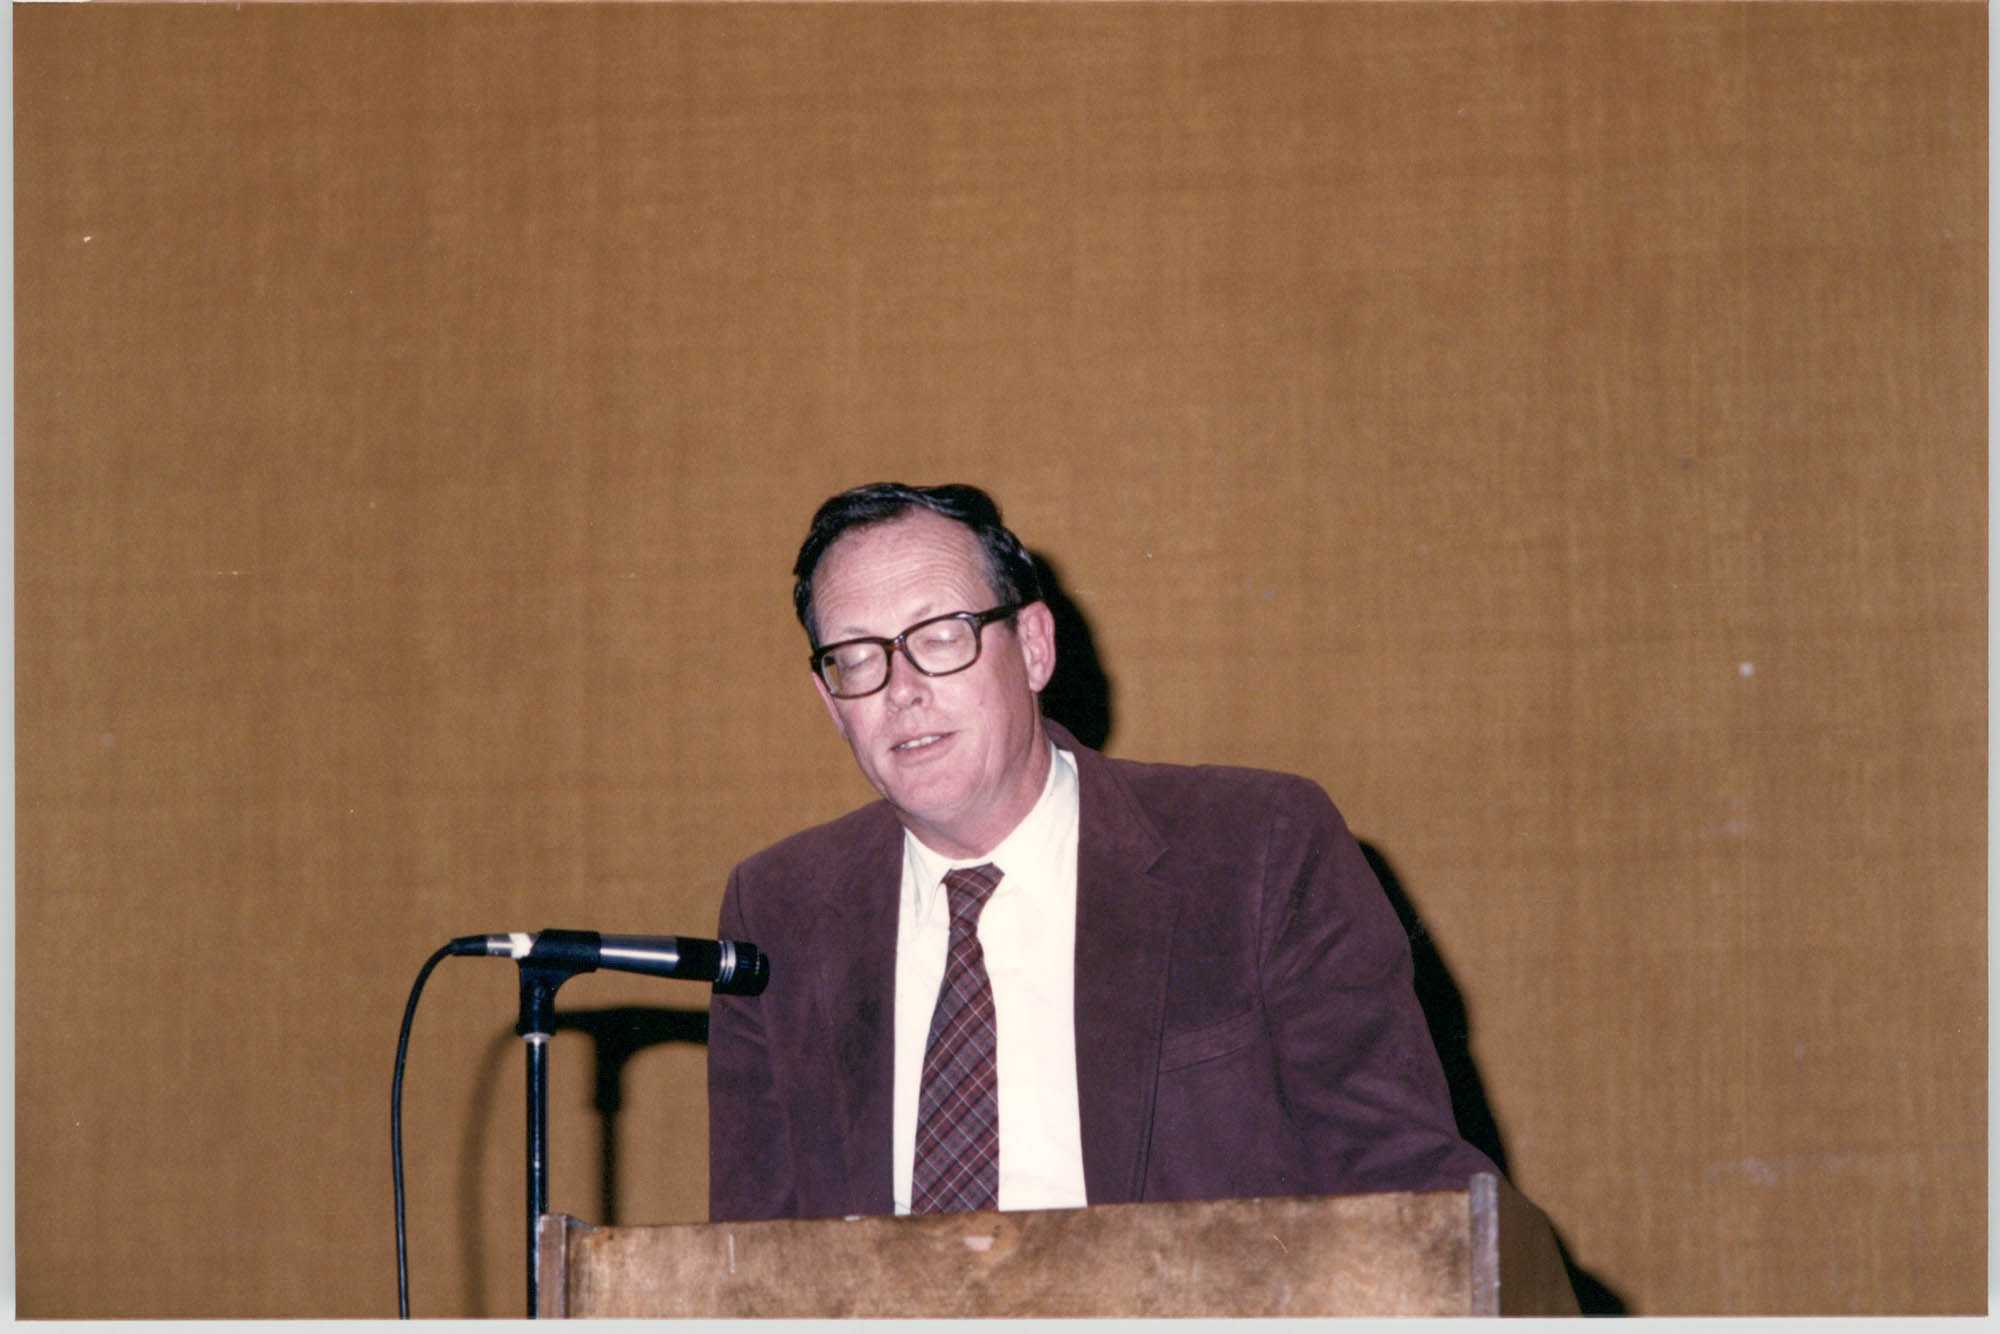 Photograph of Norman Olsen at a College of Charleston Event